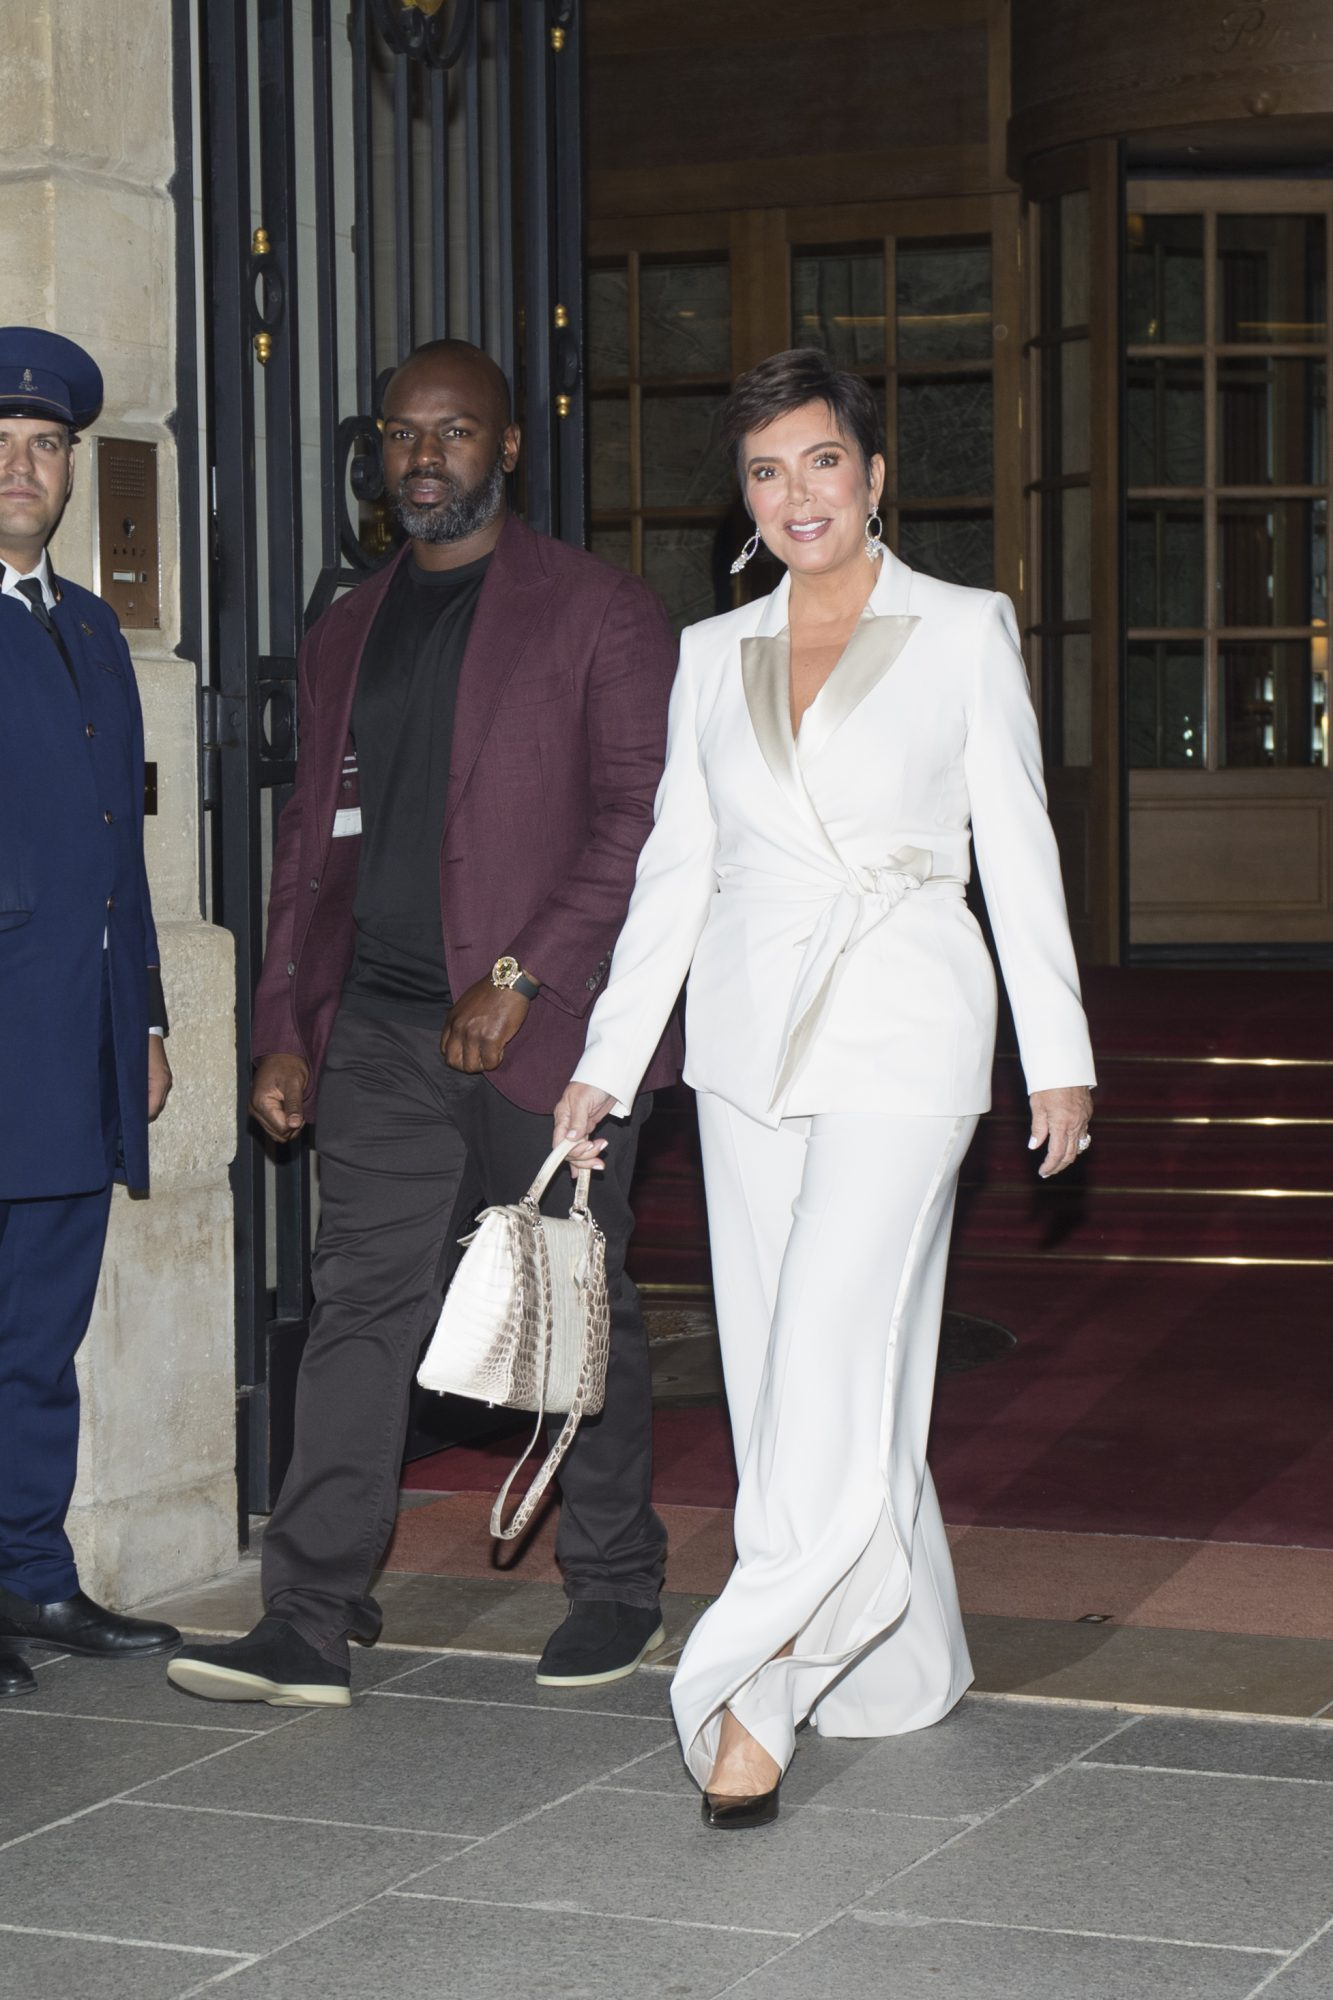 Kris Jenner wearing a suit